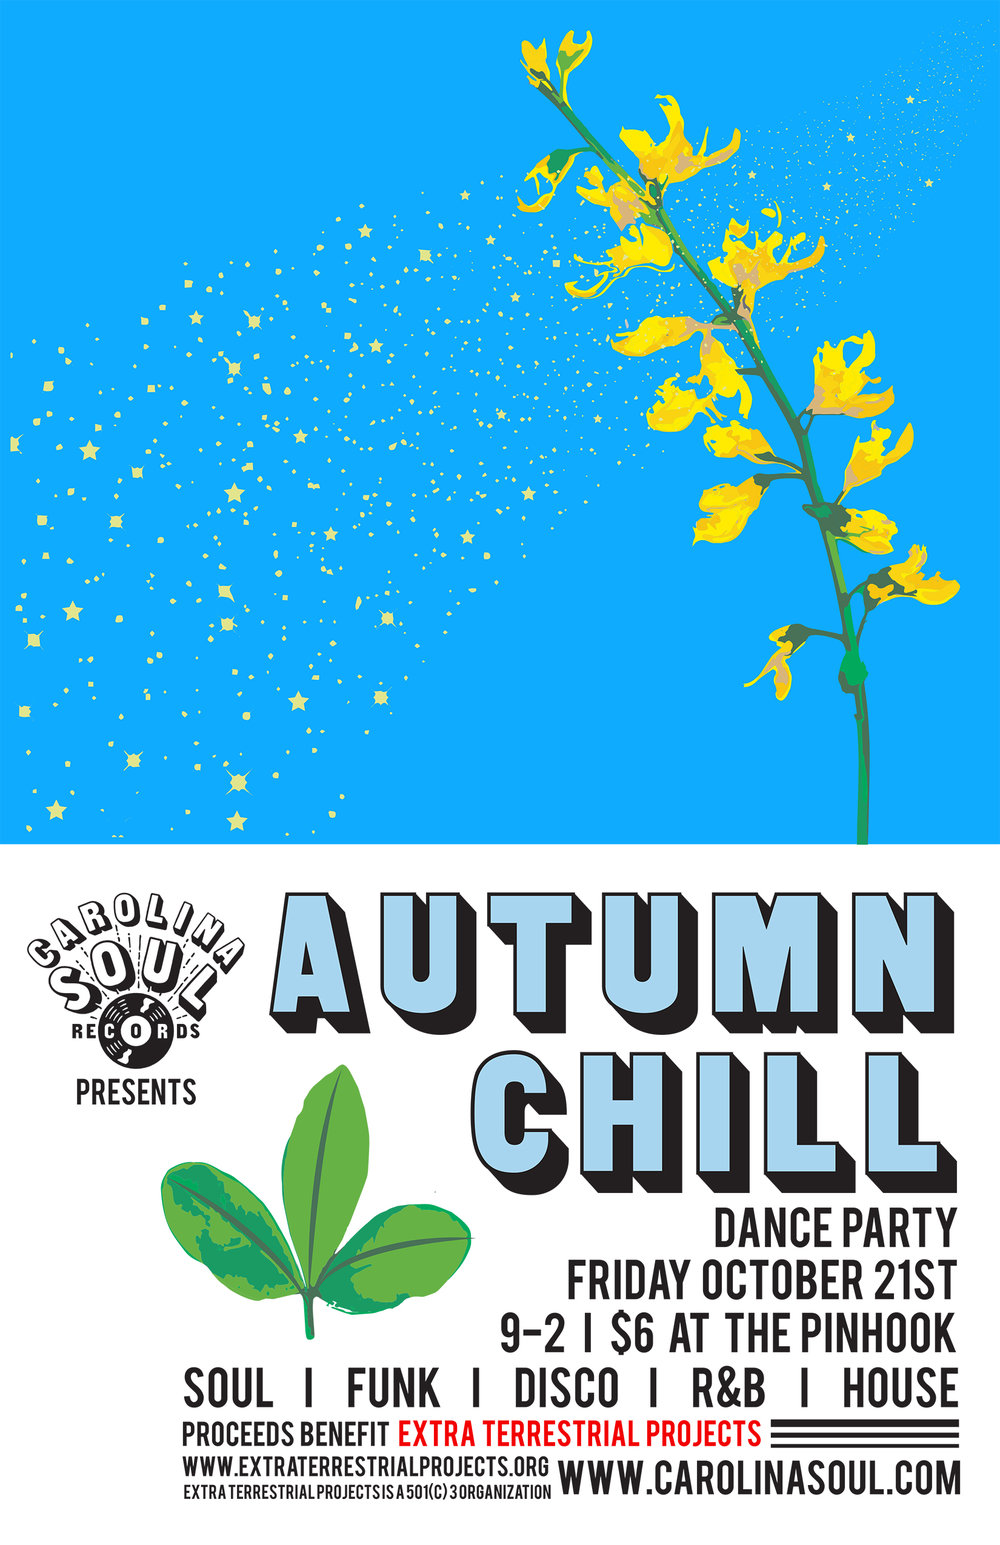 Carolina Soul Autumn Chill 11x17 Poster.jpg